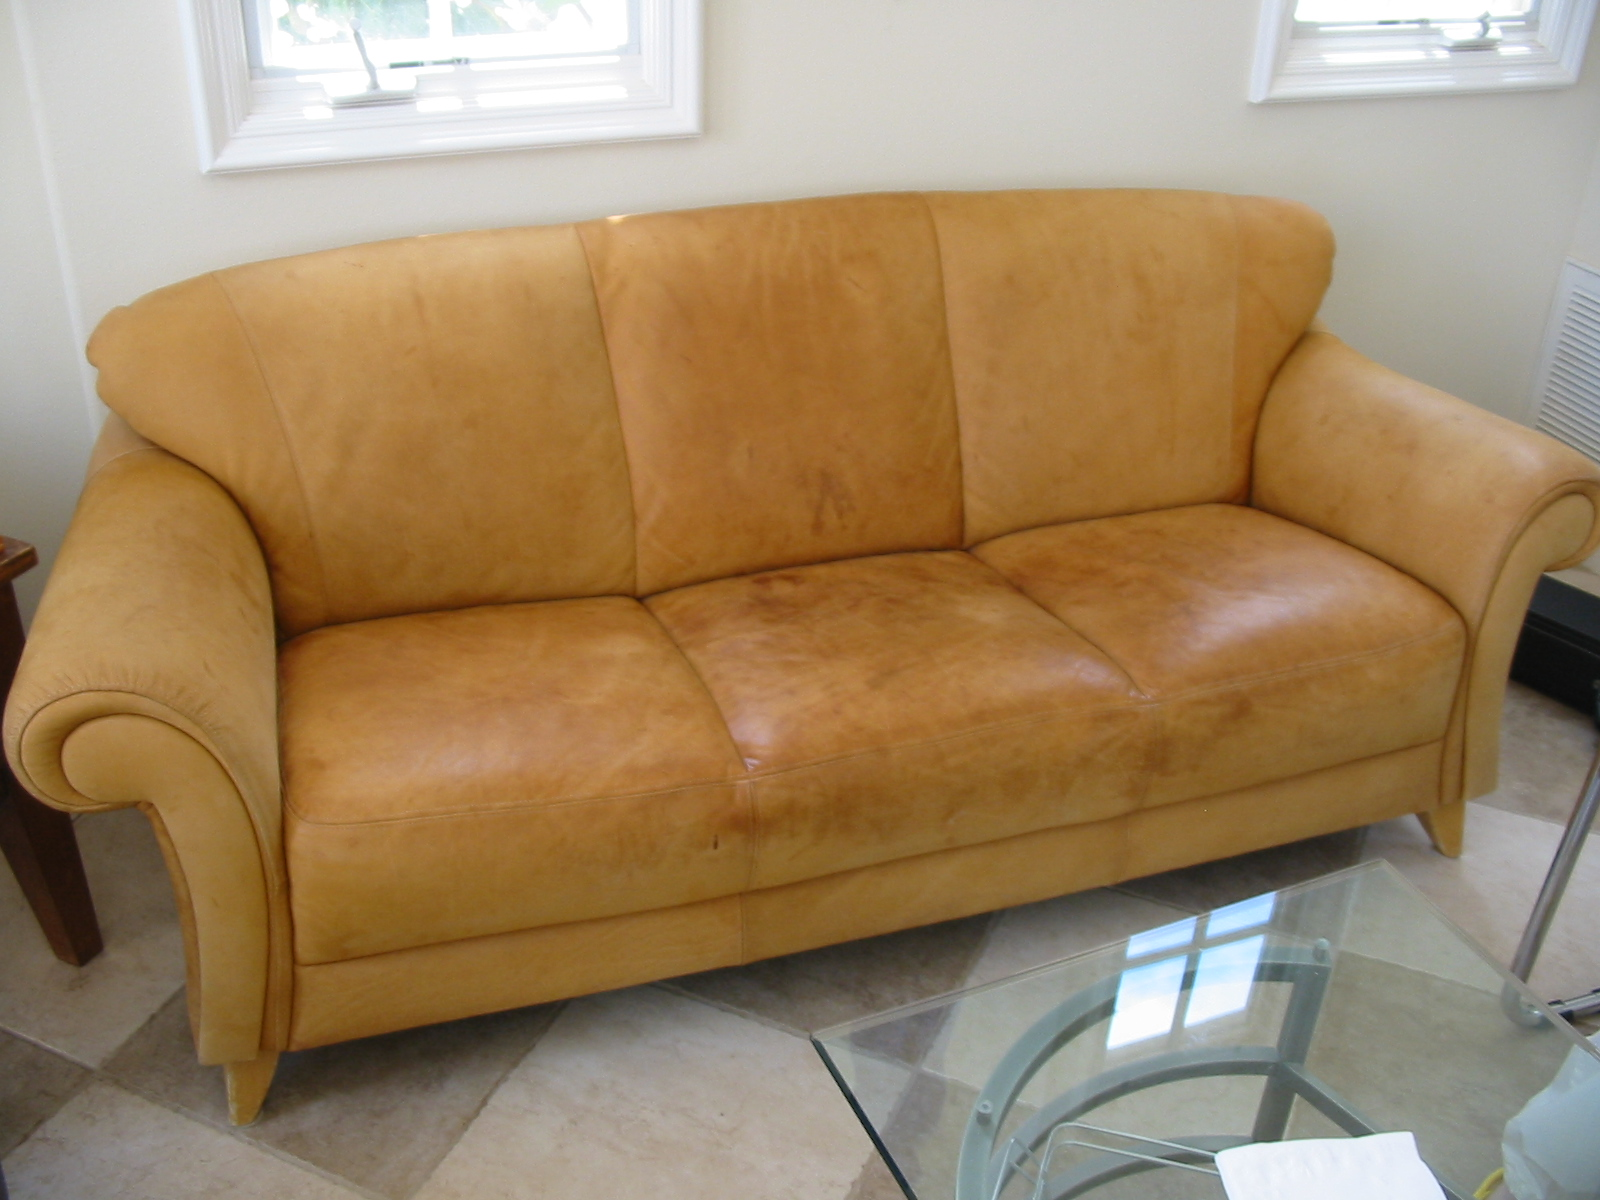 Faded and stained analine leather sofa.